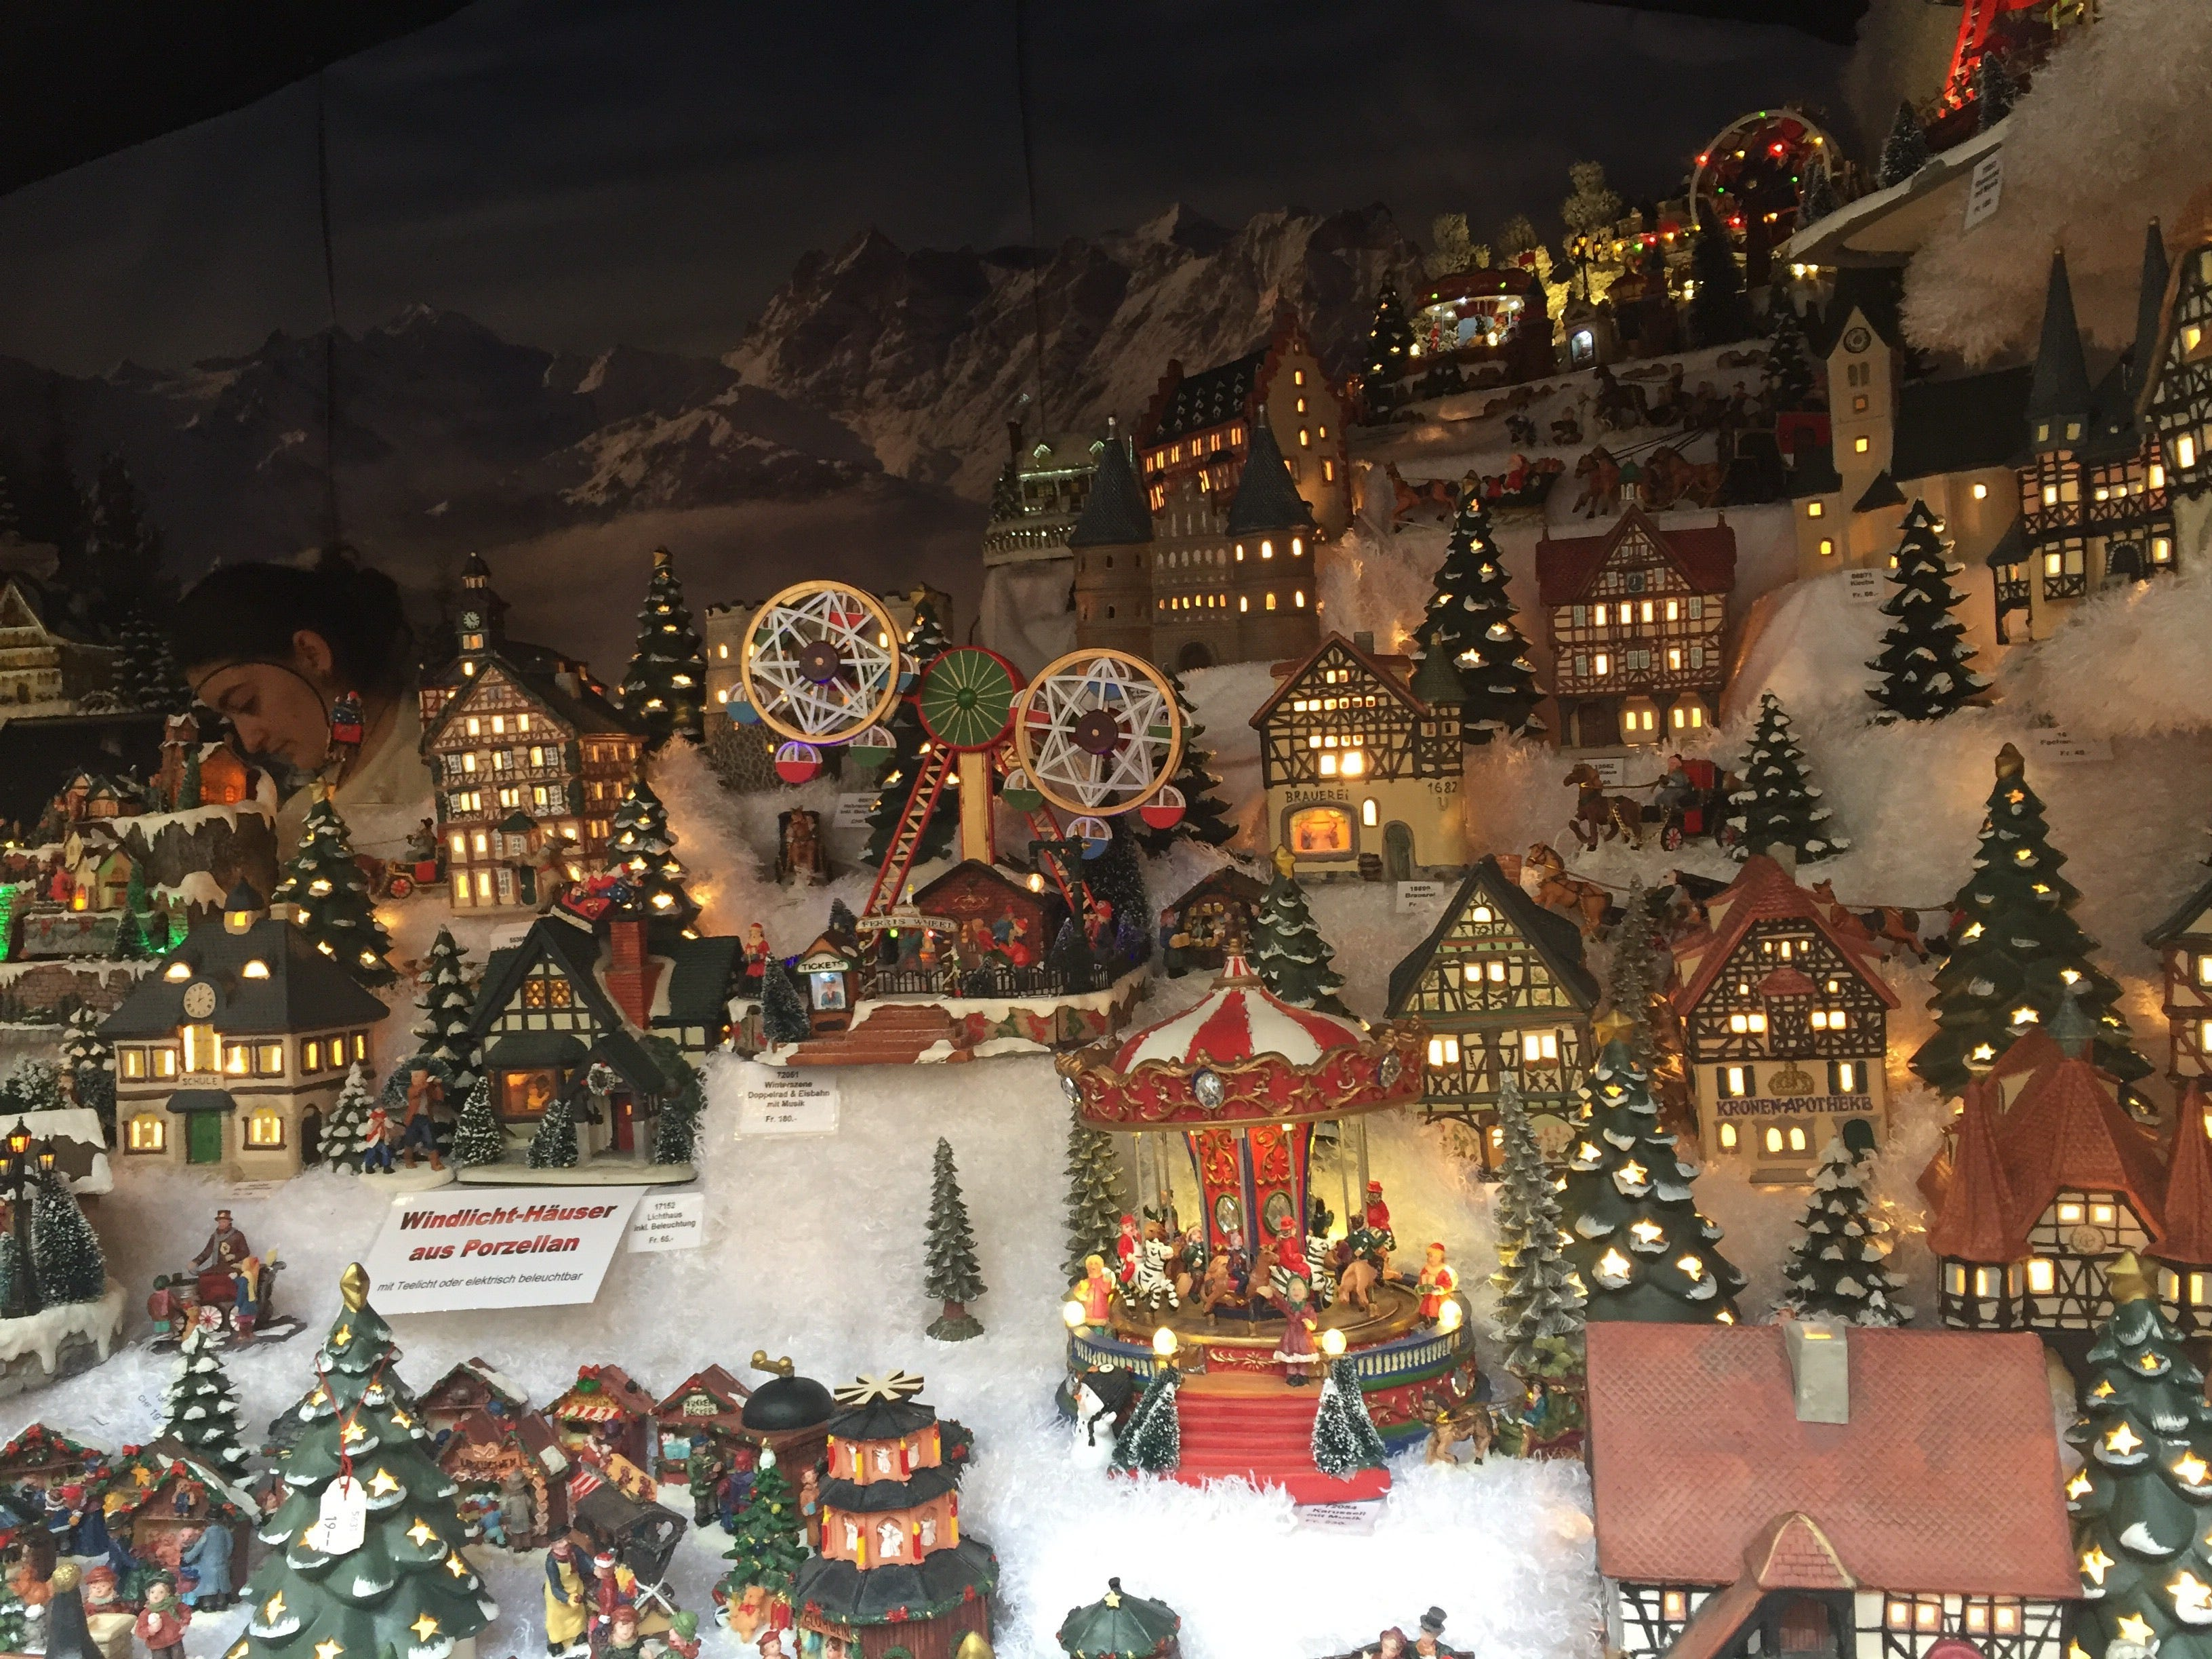 This Christmas village displayed at one of the stands is made entirely from porcelain.